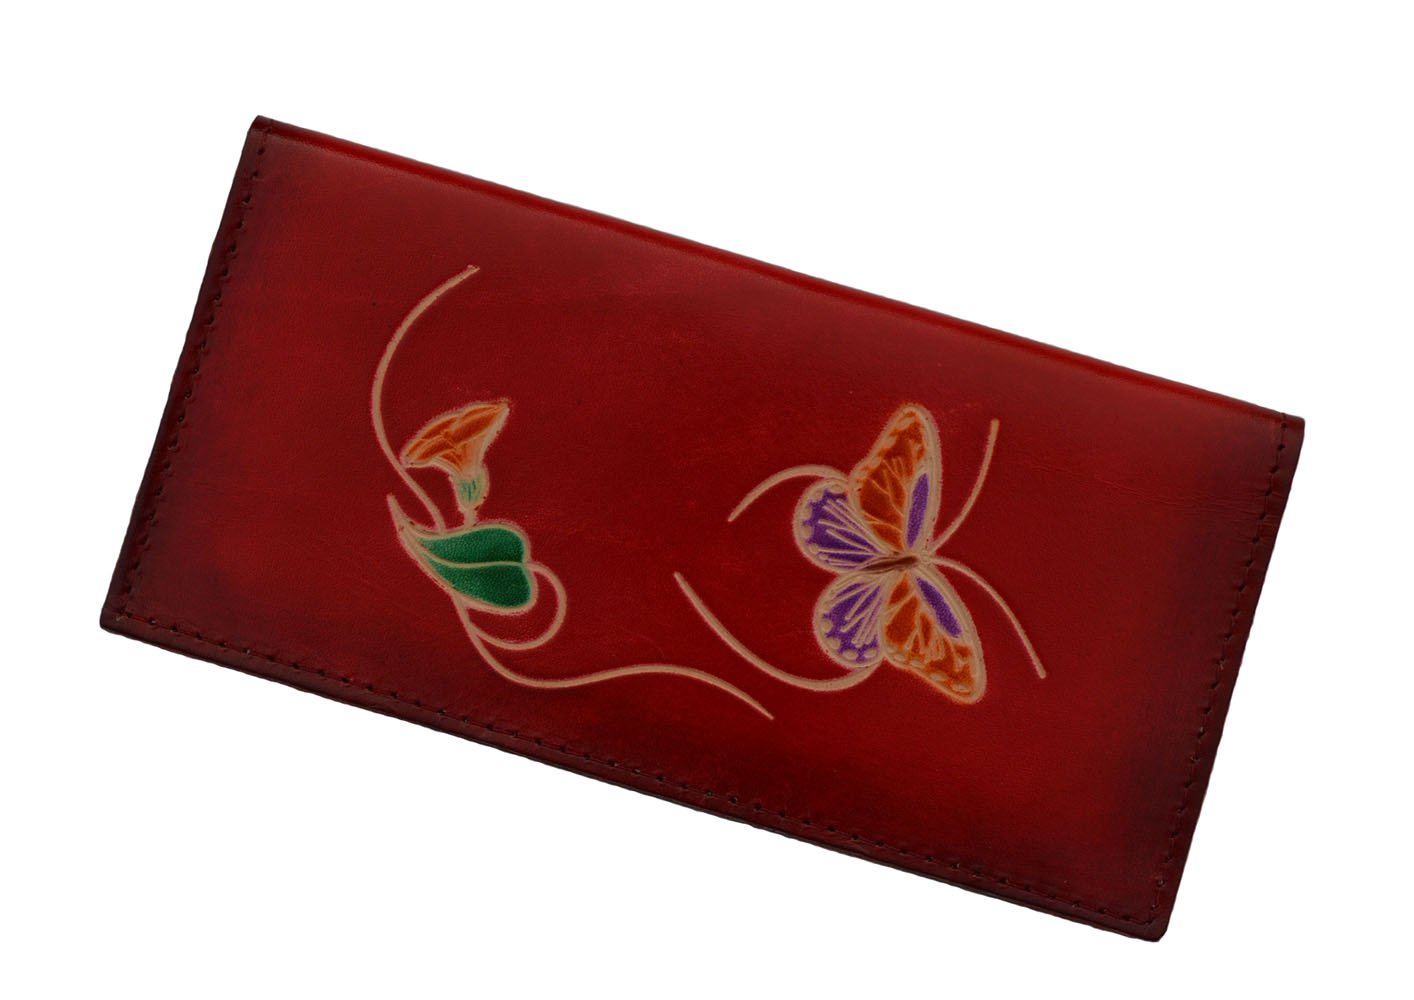 Leather Checkbook Cover, a Butterfly and Flower Patterns Embossed on Both Side Leather Check Book Cover